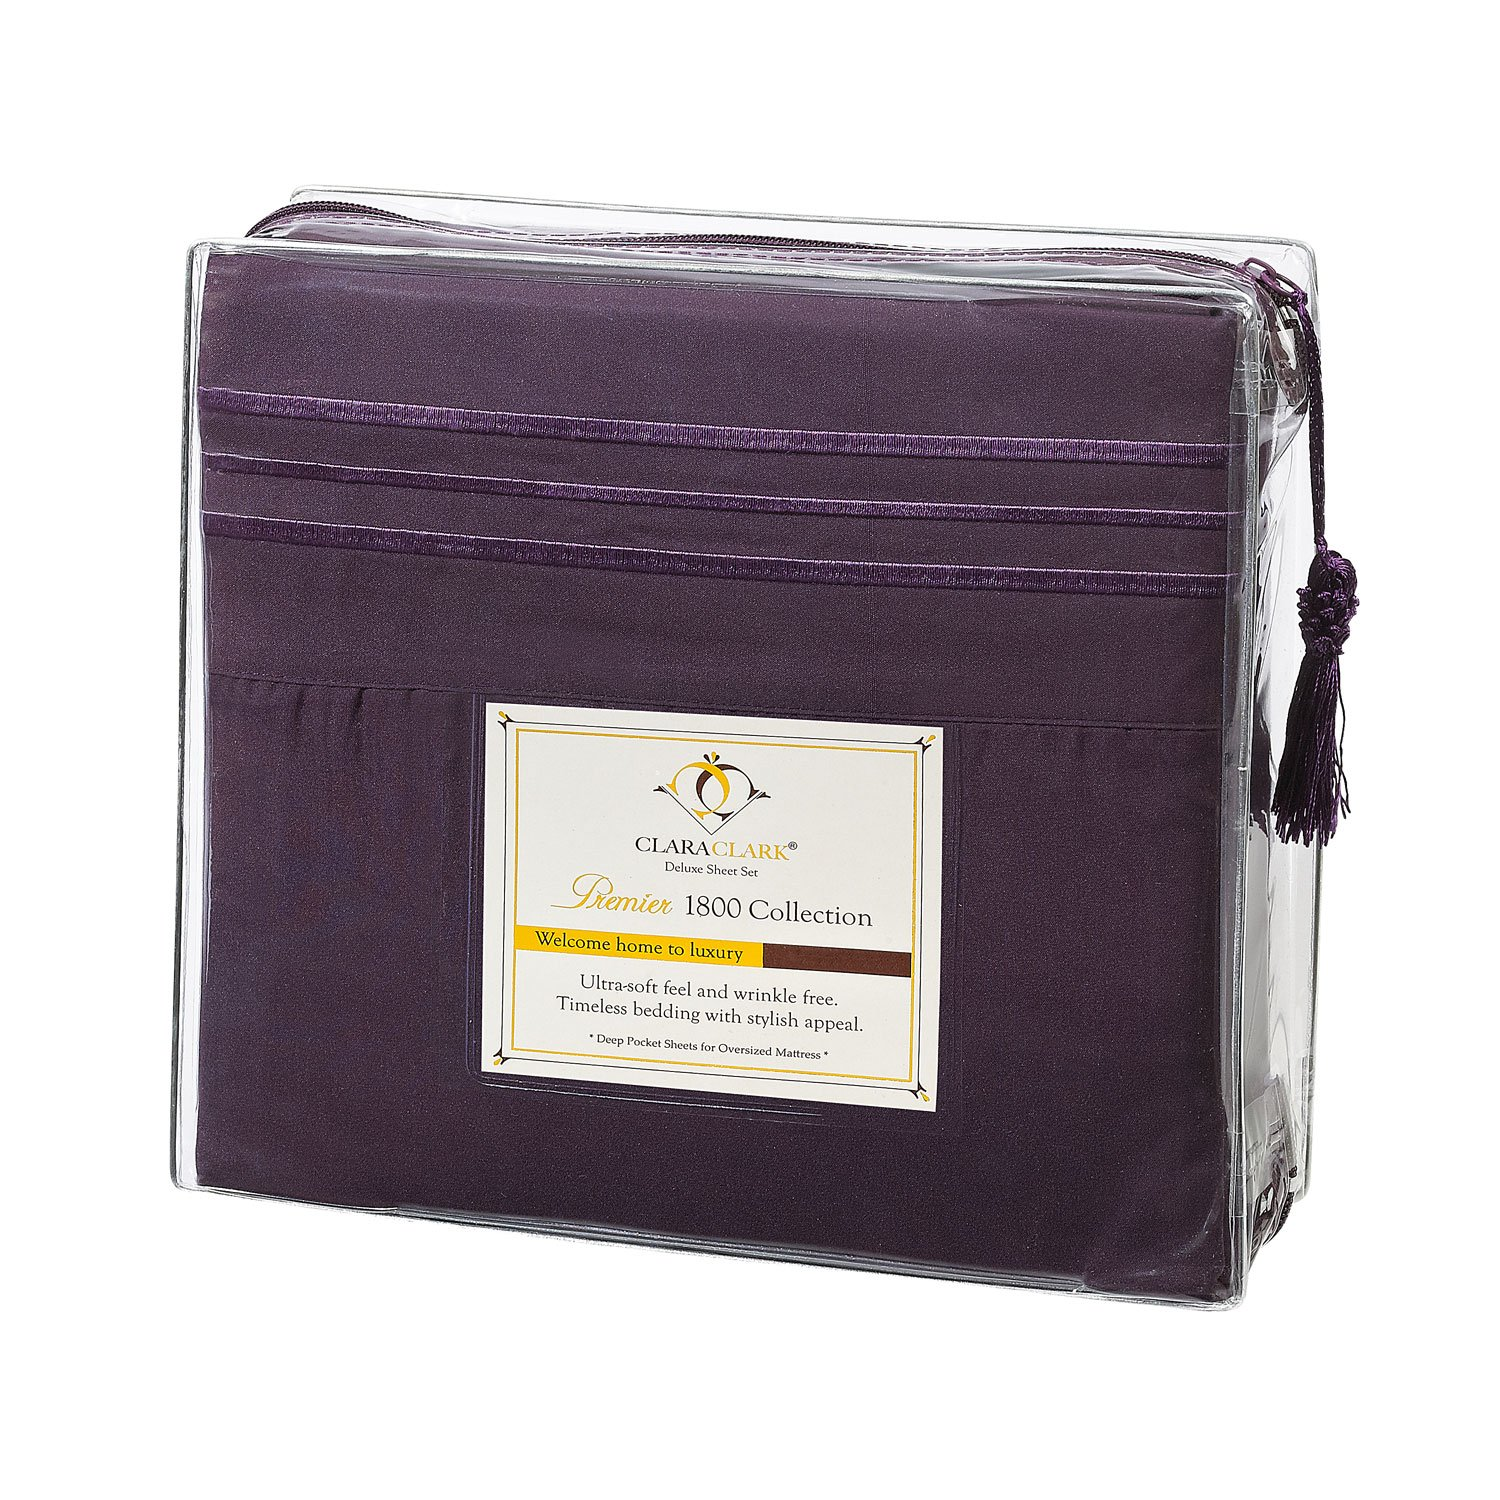 Clara Clark Premier 1800 Collection 4pc Bed Sheet Set - Queen Size, Purple  Eggplant,: Amazon.ca: Home & Kitchen